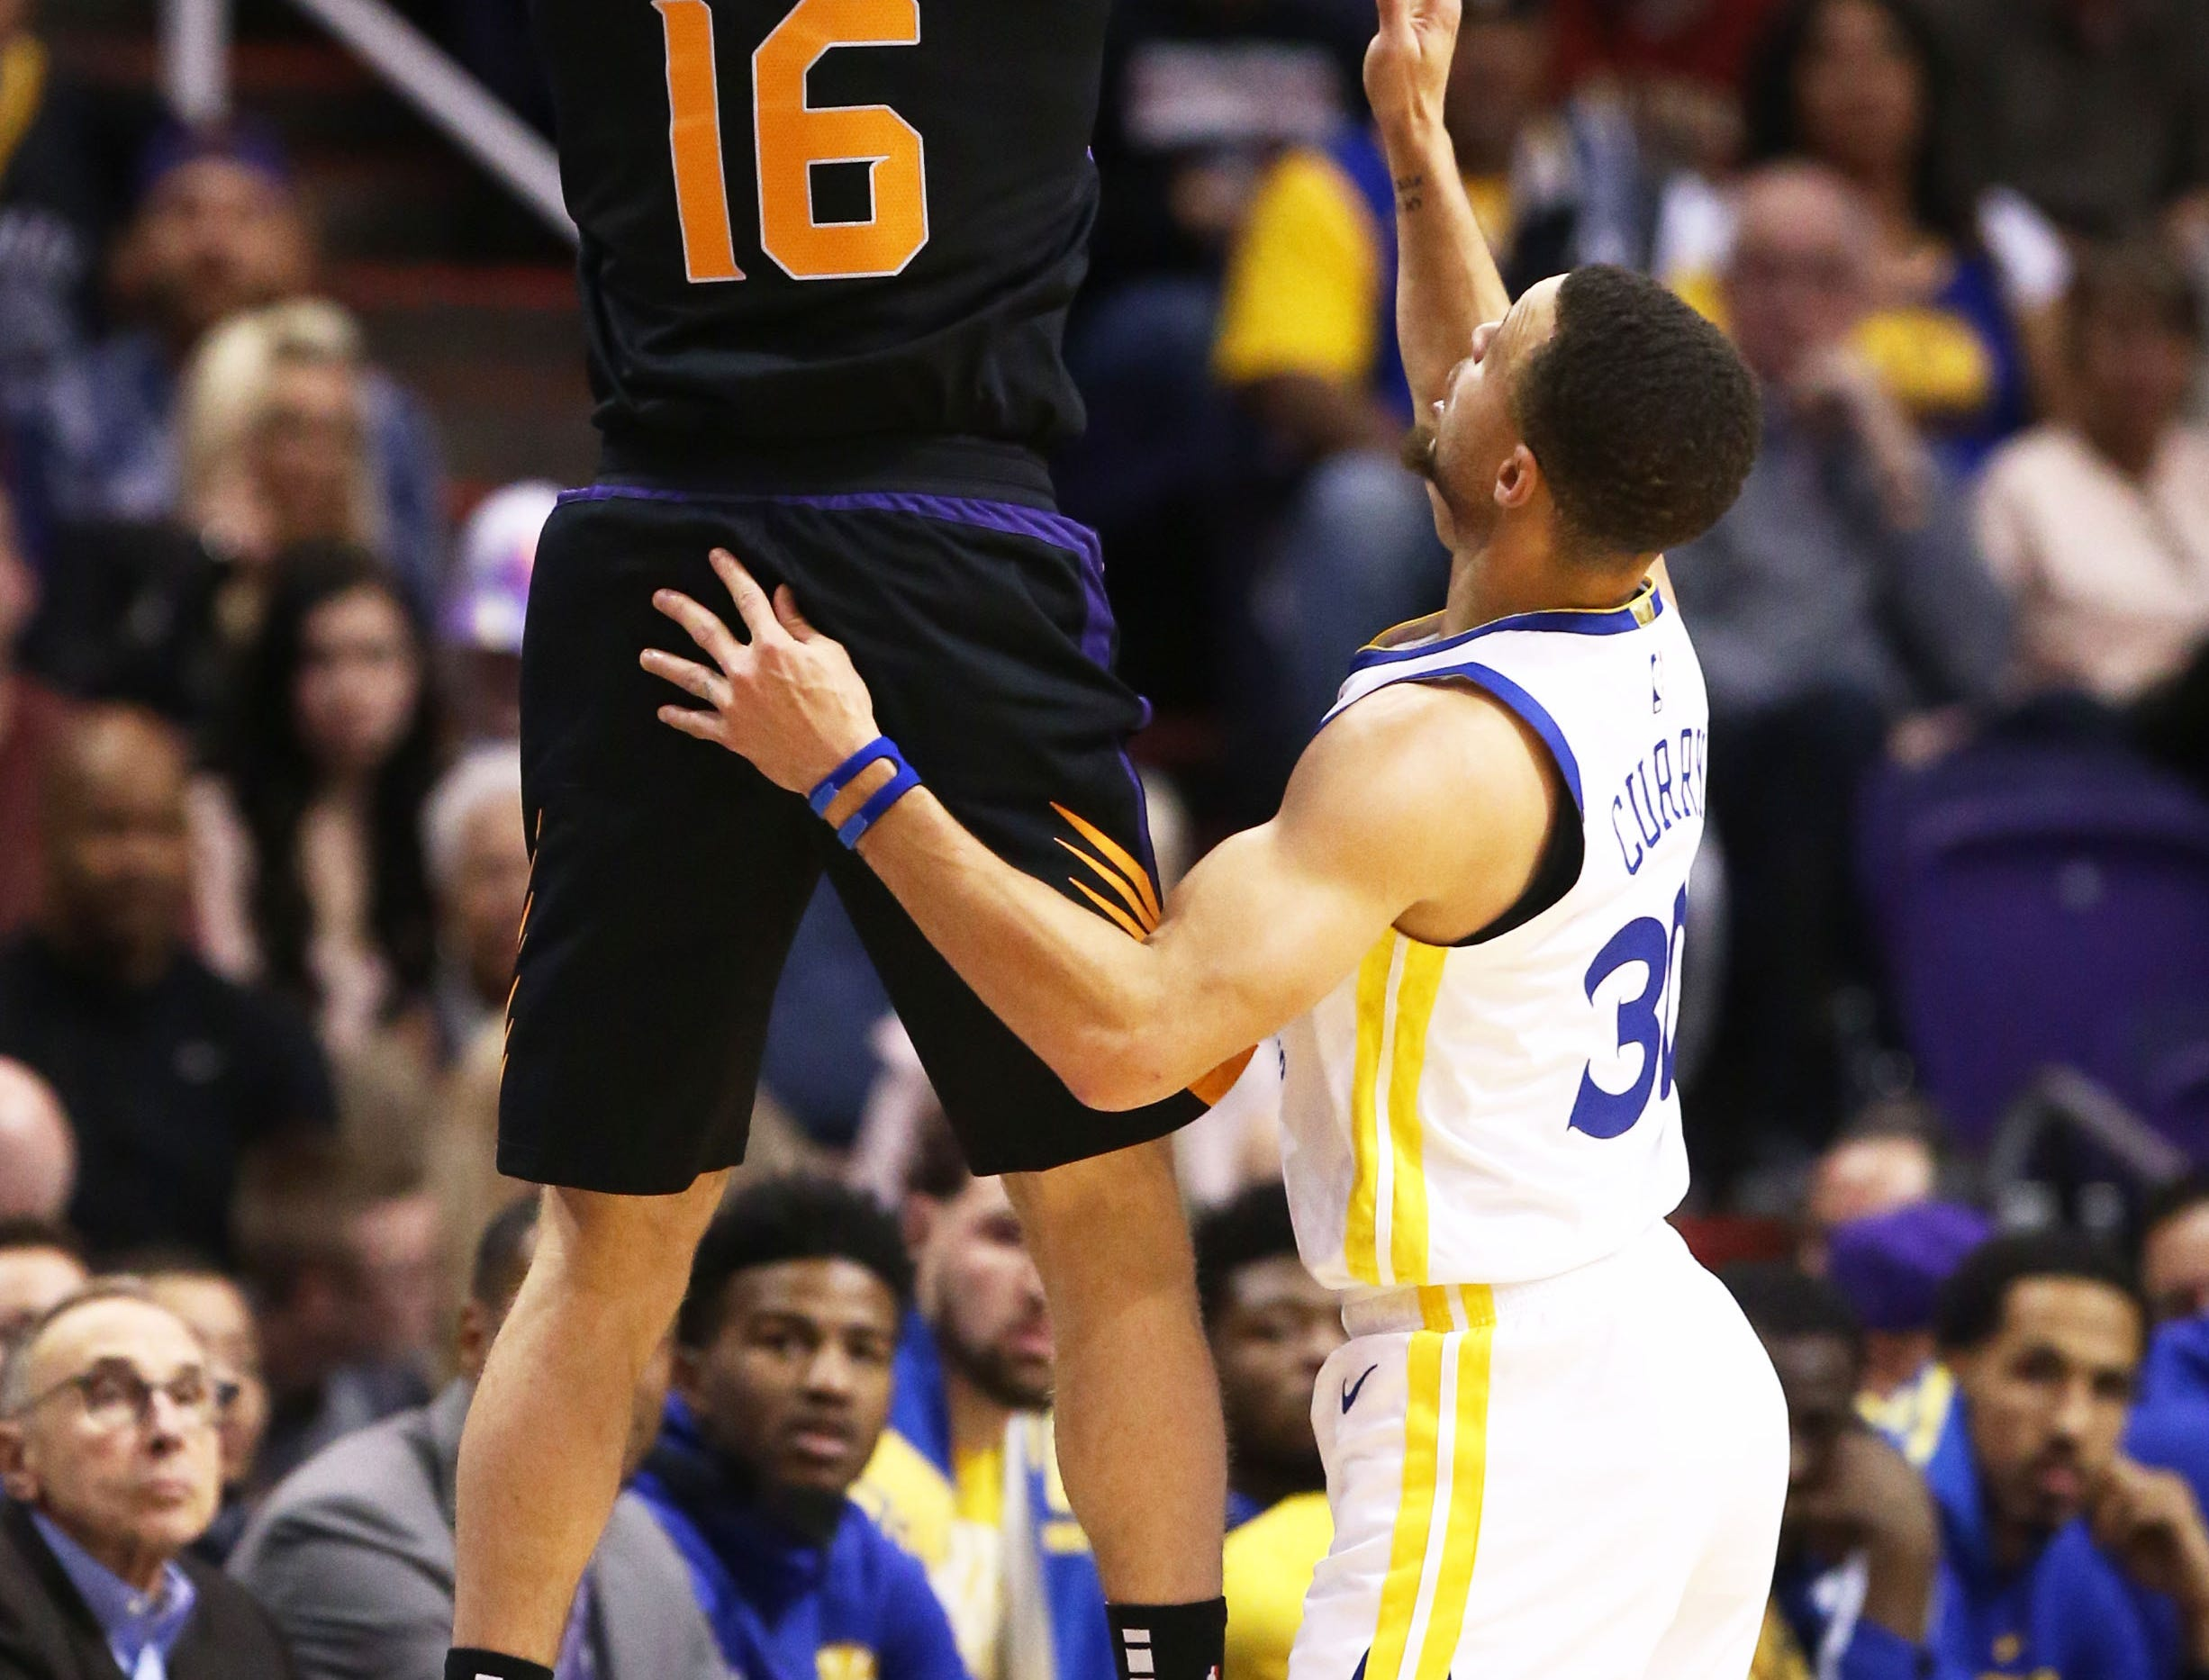 Phoenix Suns guard Tyler Johnson steals thje ball from Golden State Warriors guard Stephen Curry in the first half on Feb. 8 at Talking Stick Resort Arena.